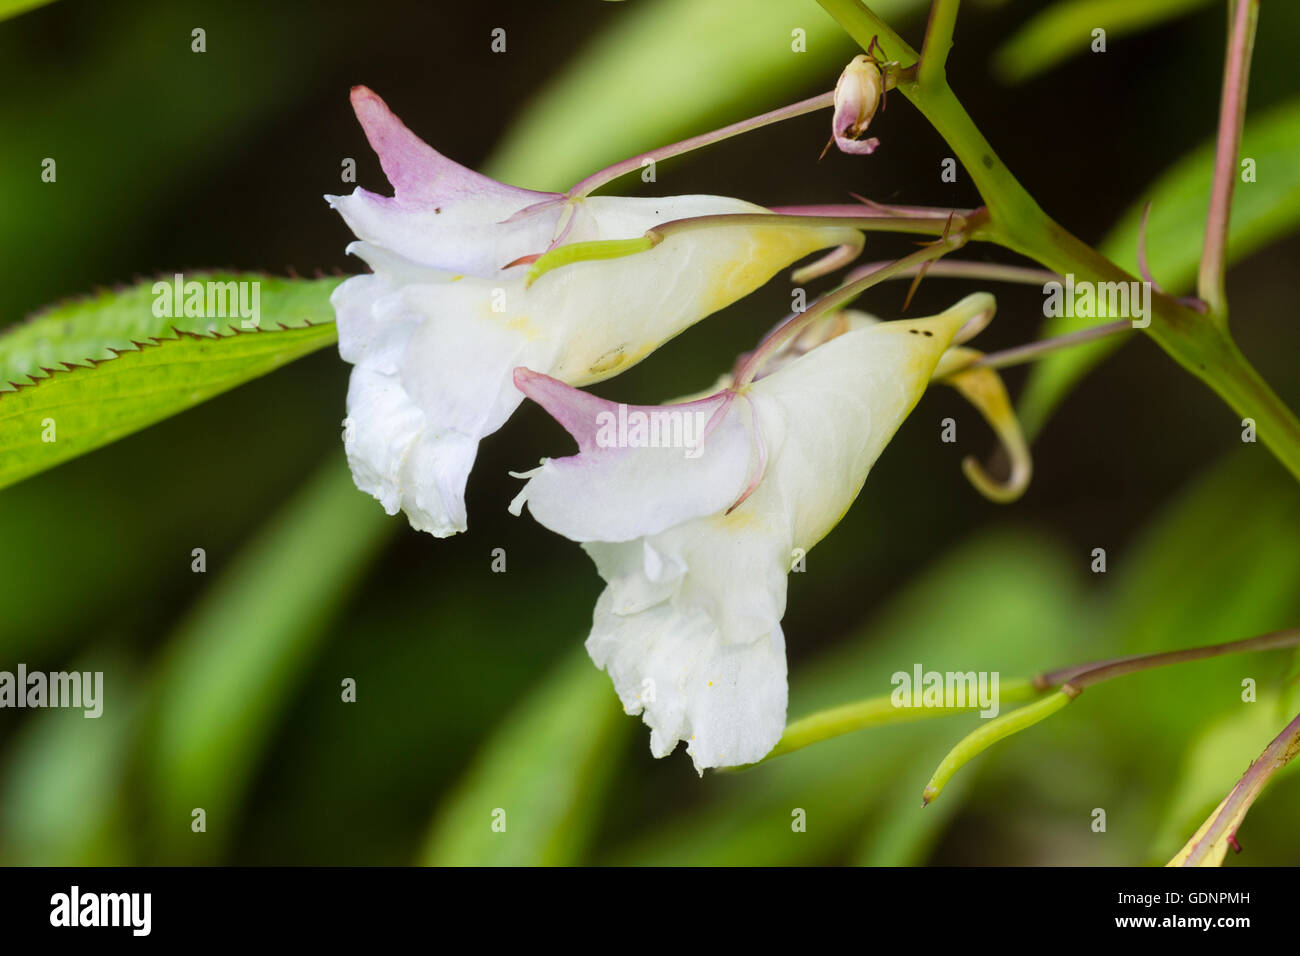 Pink tinged white flowers of the Himalayan balsam, Impatiens arguta 'Alba' - Stock Image